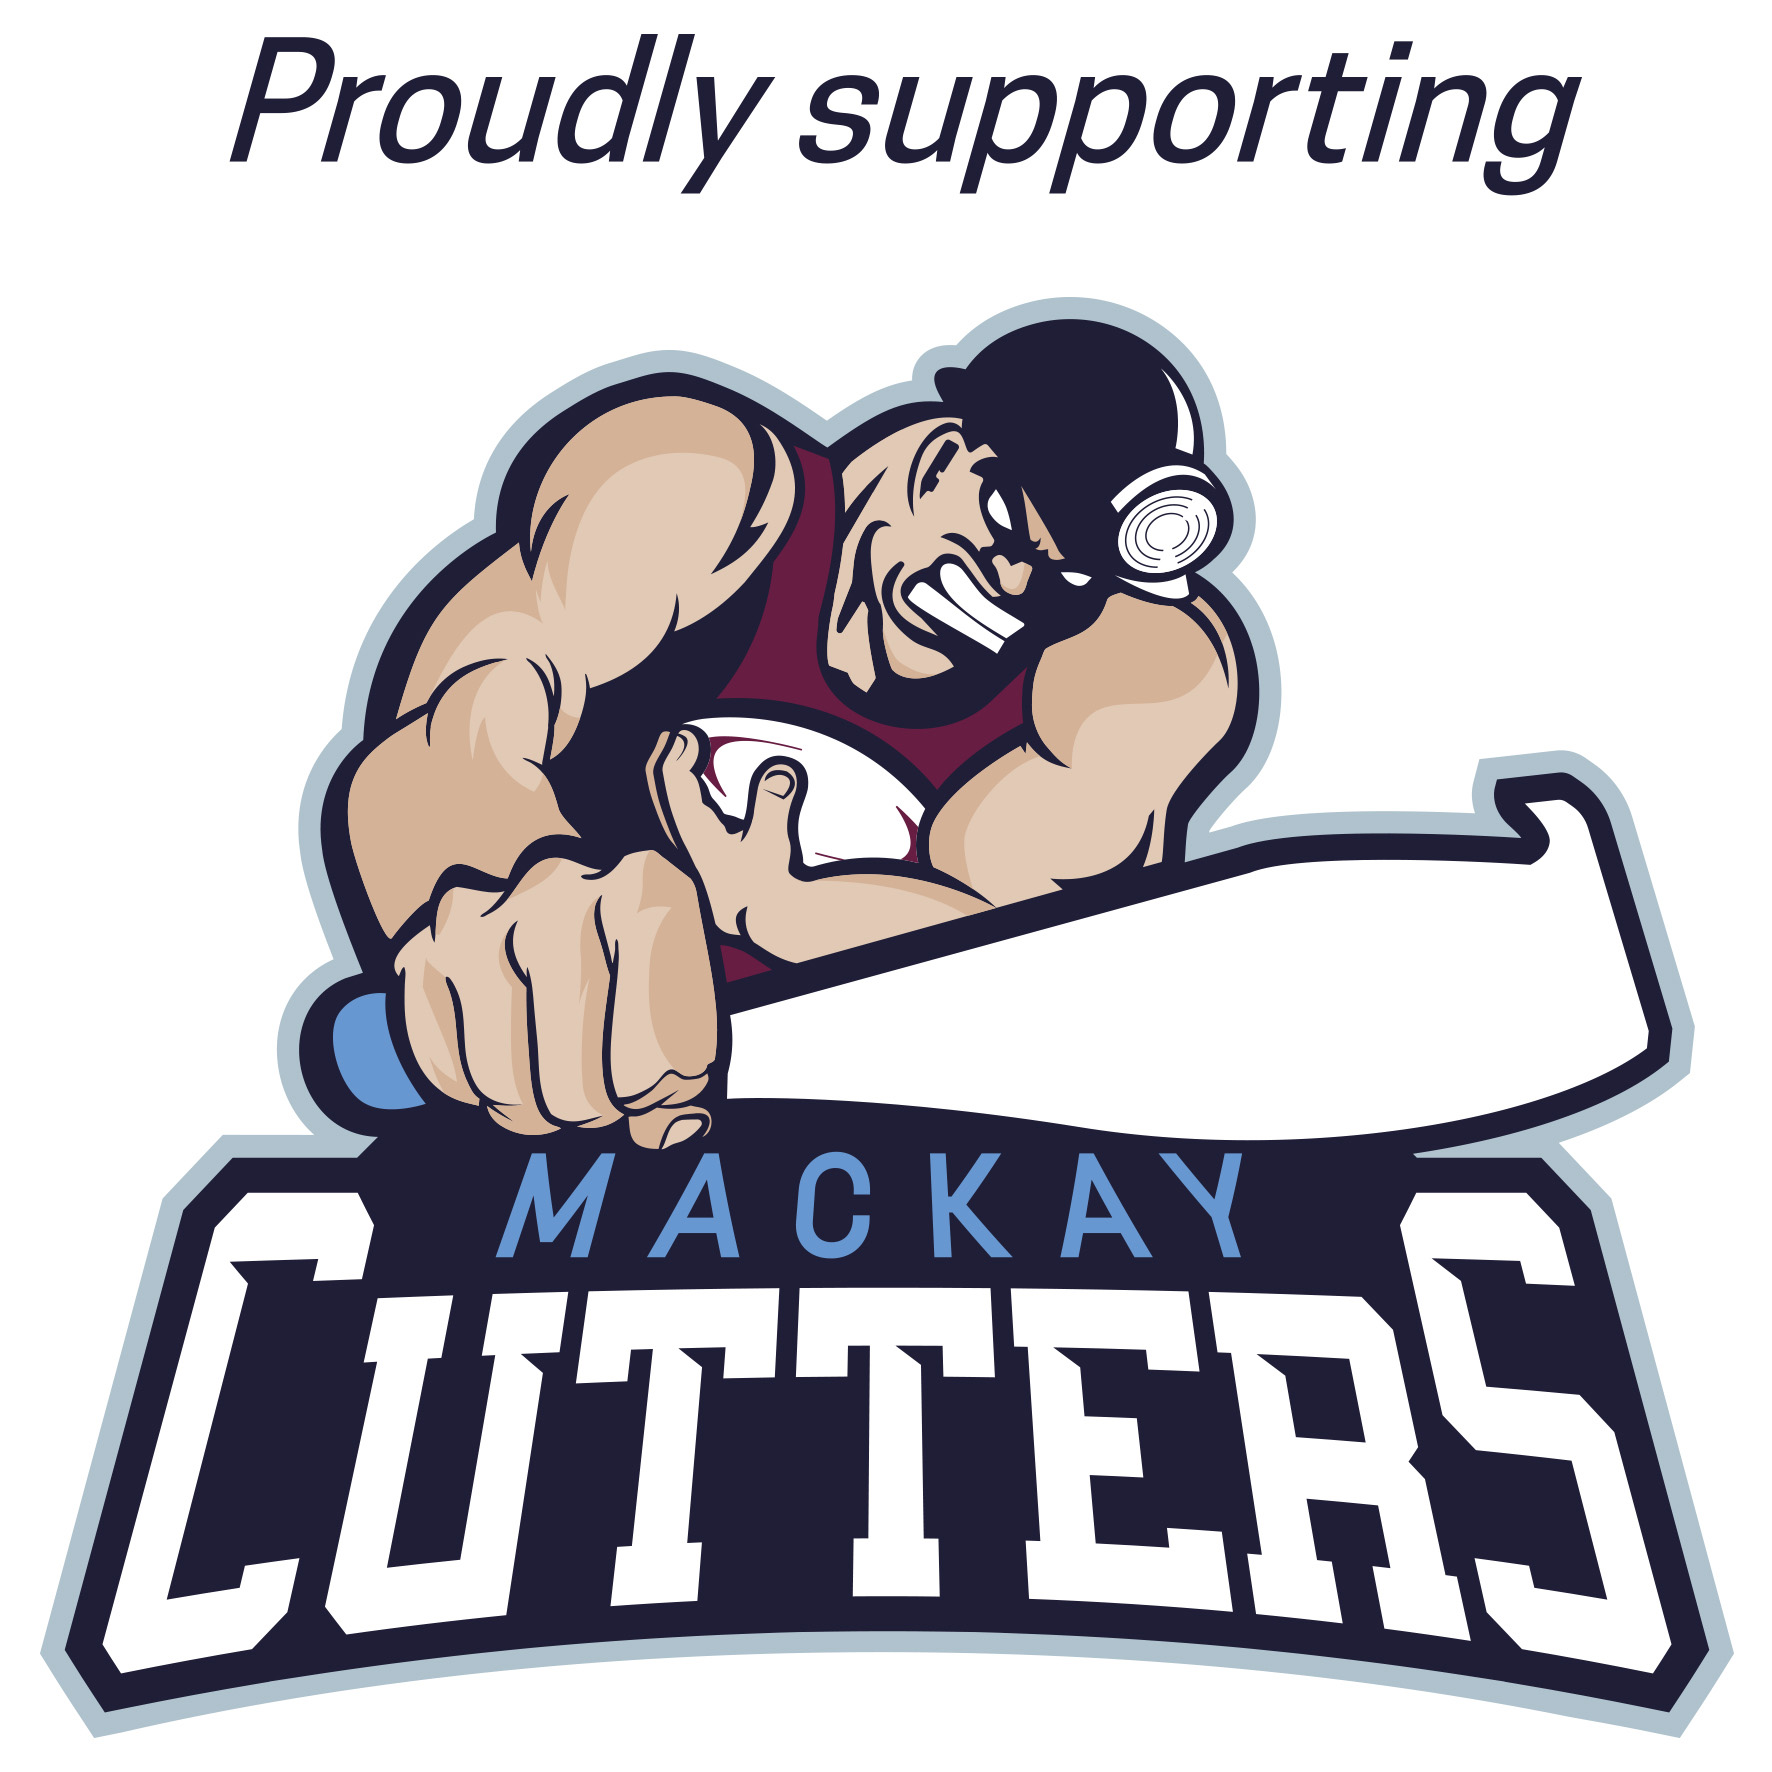 Proudly supporting Mackay Cutters